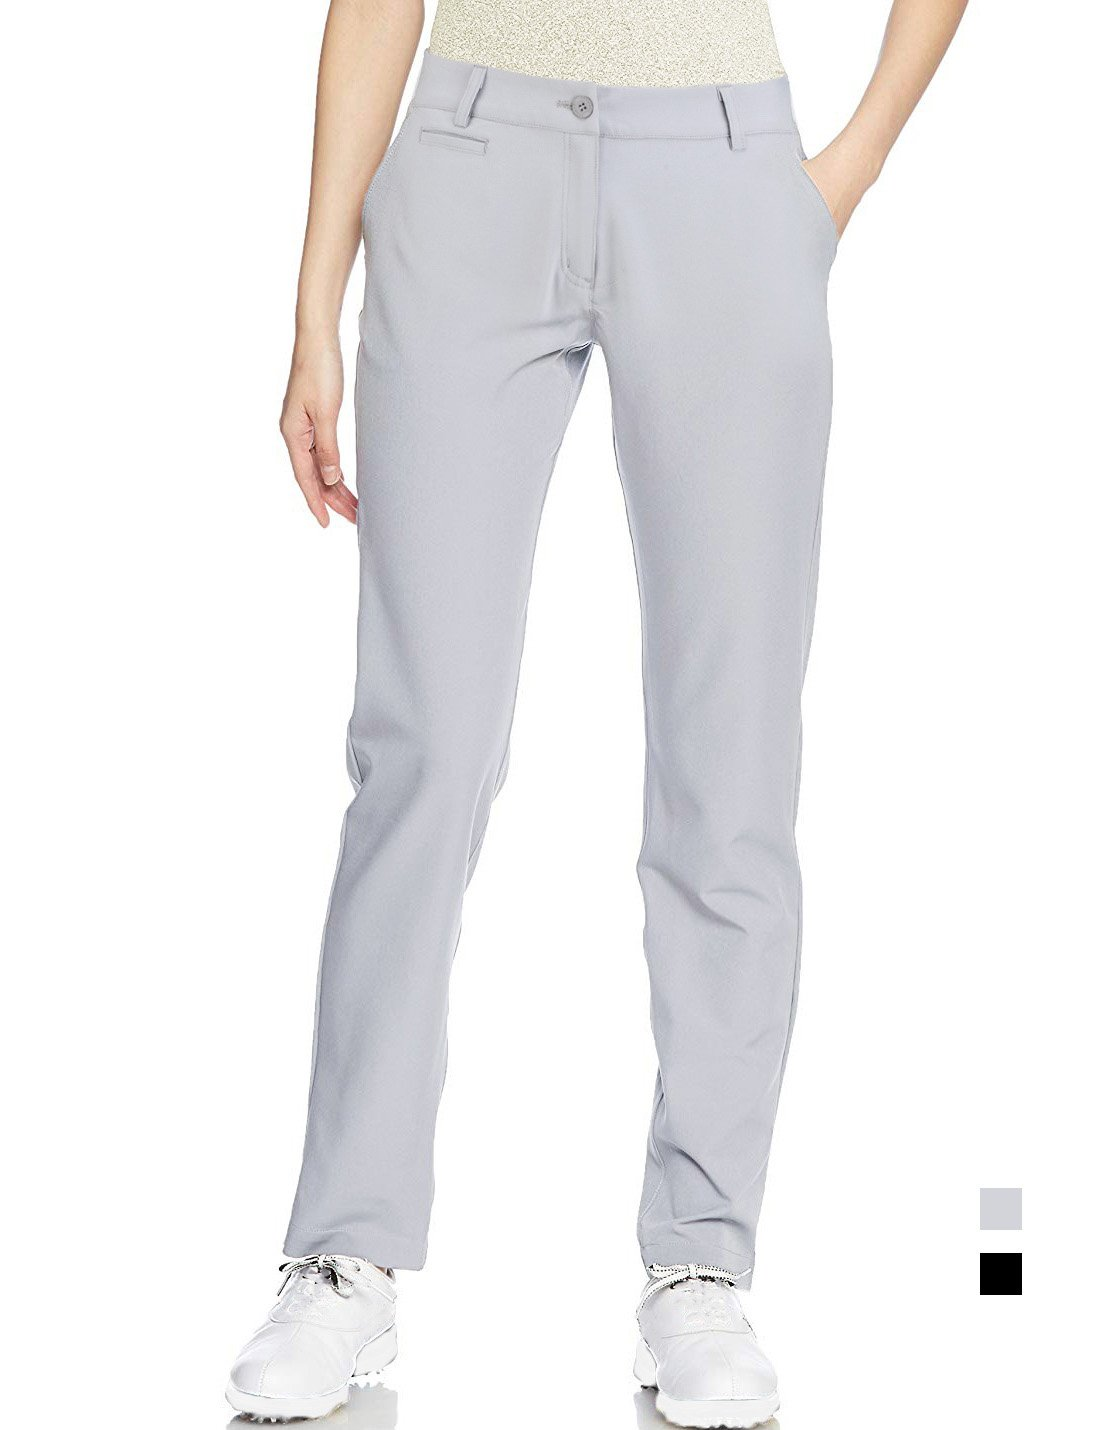 Golf Pants Women Long Stretch Tall Straight Leg Twill Work Chino Ladies Size 8 Grey by Lesmart